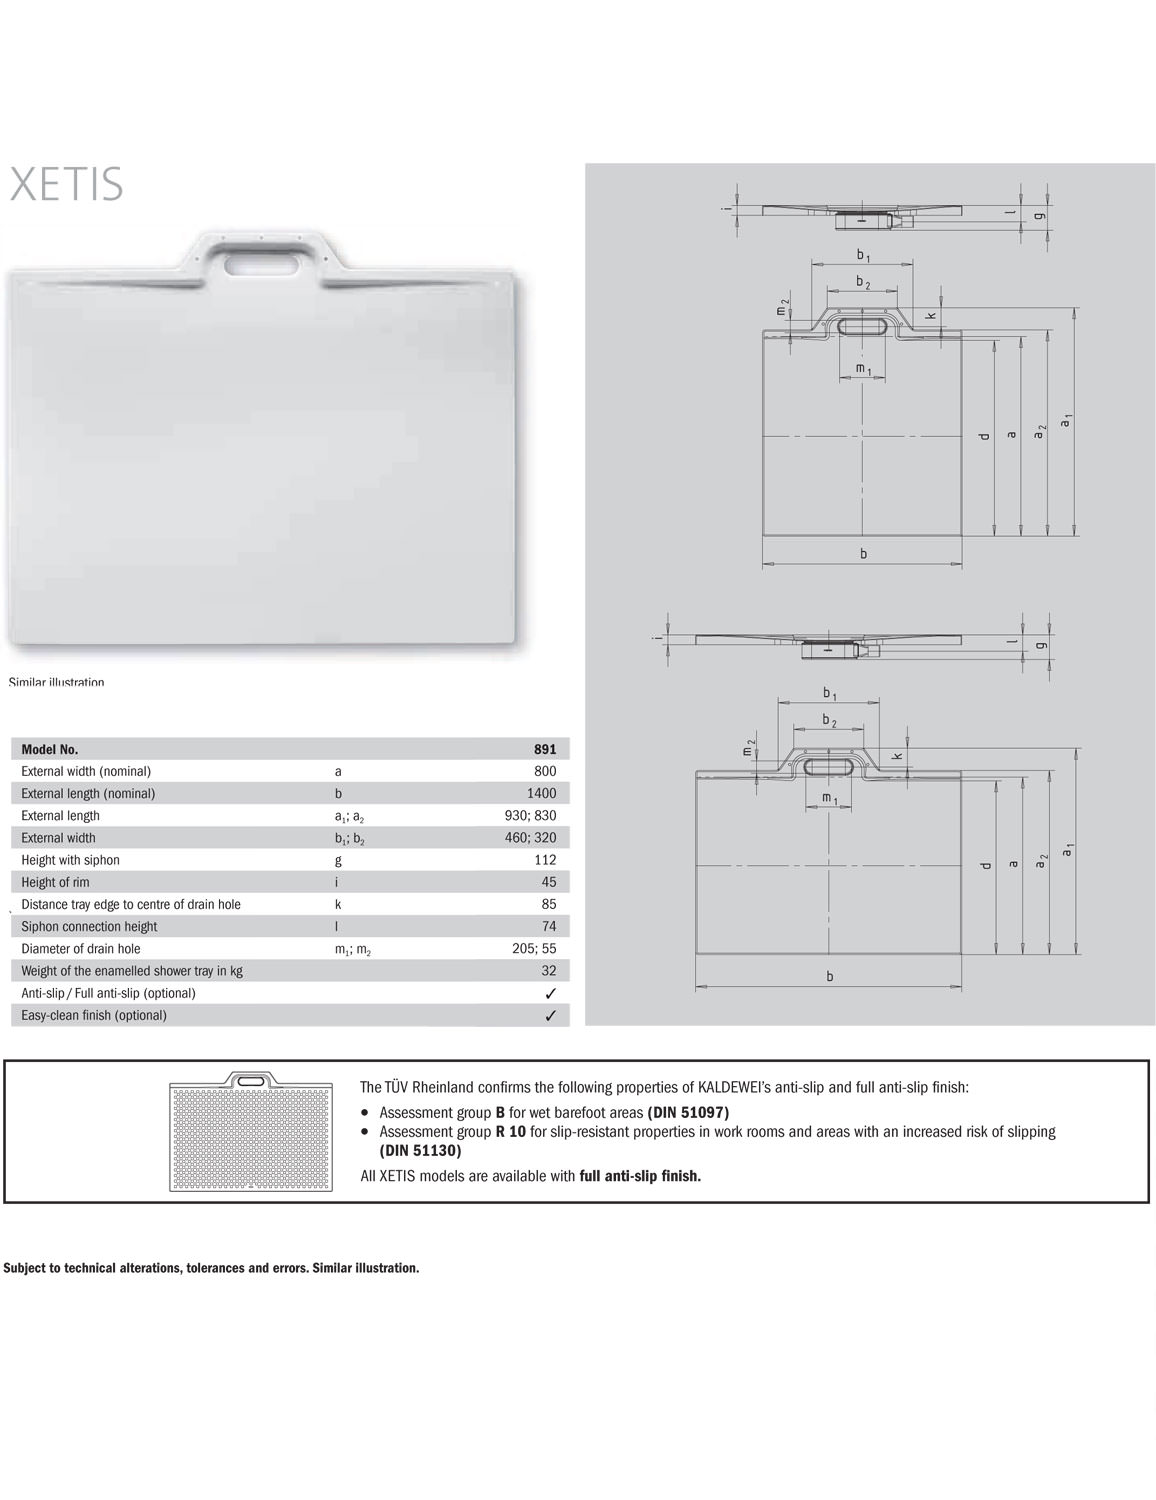 Kaldewei Xetis Kaldewei Avantgarde Xetis 891 Steel Shower Tray 1400 X 800mm